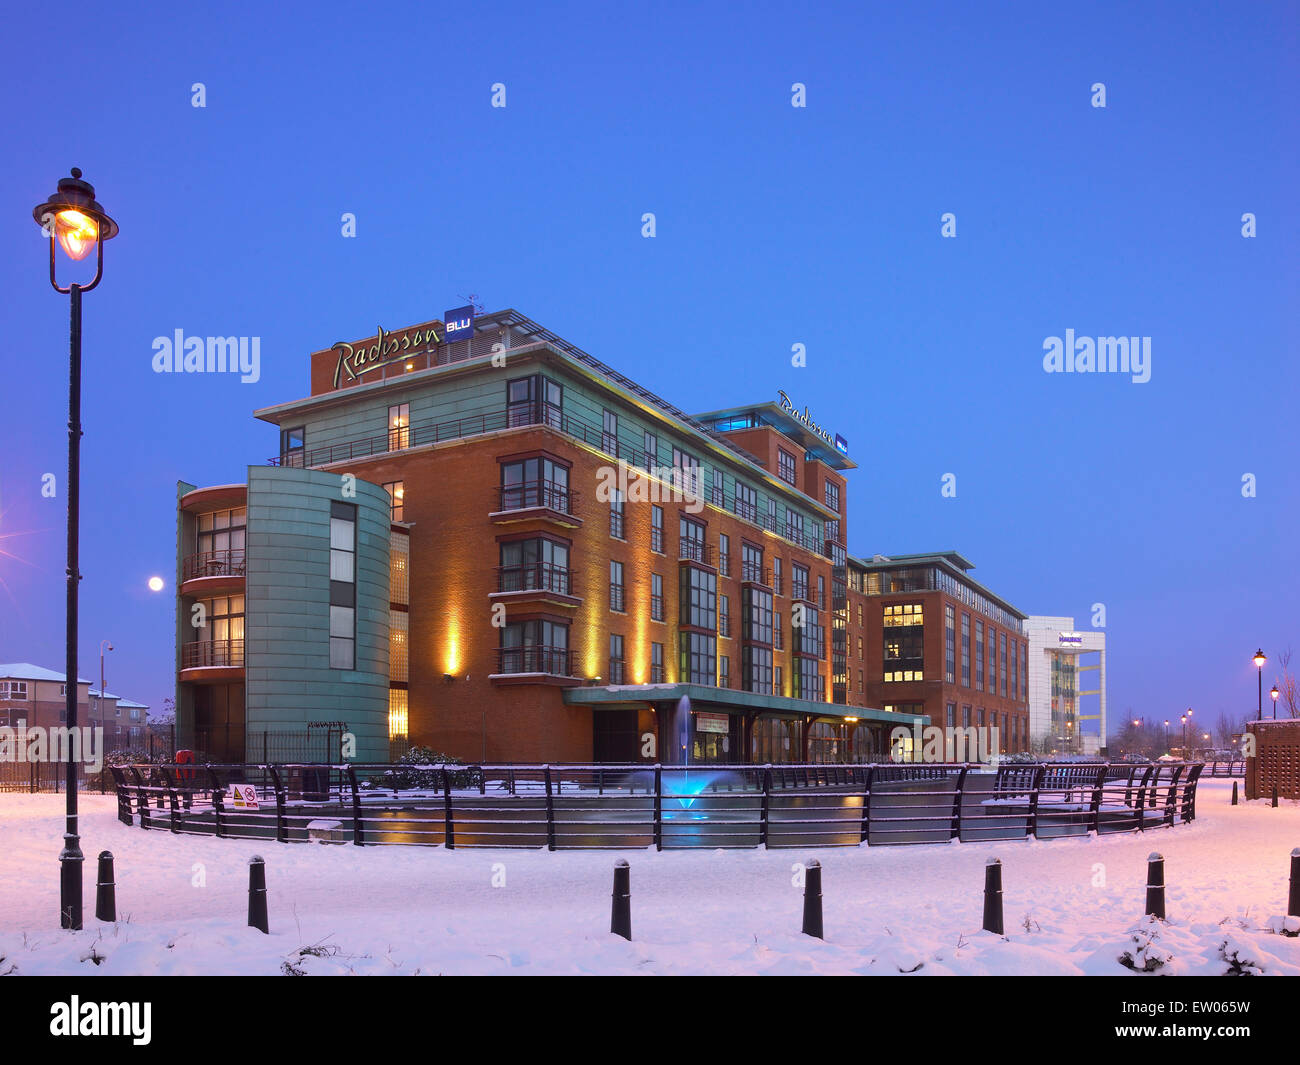 The Radisson Blu Hotel Belfast at the Gasworks. - Stock Image